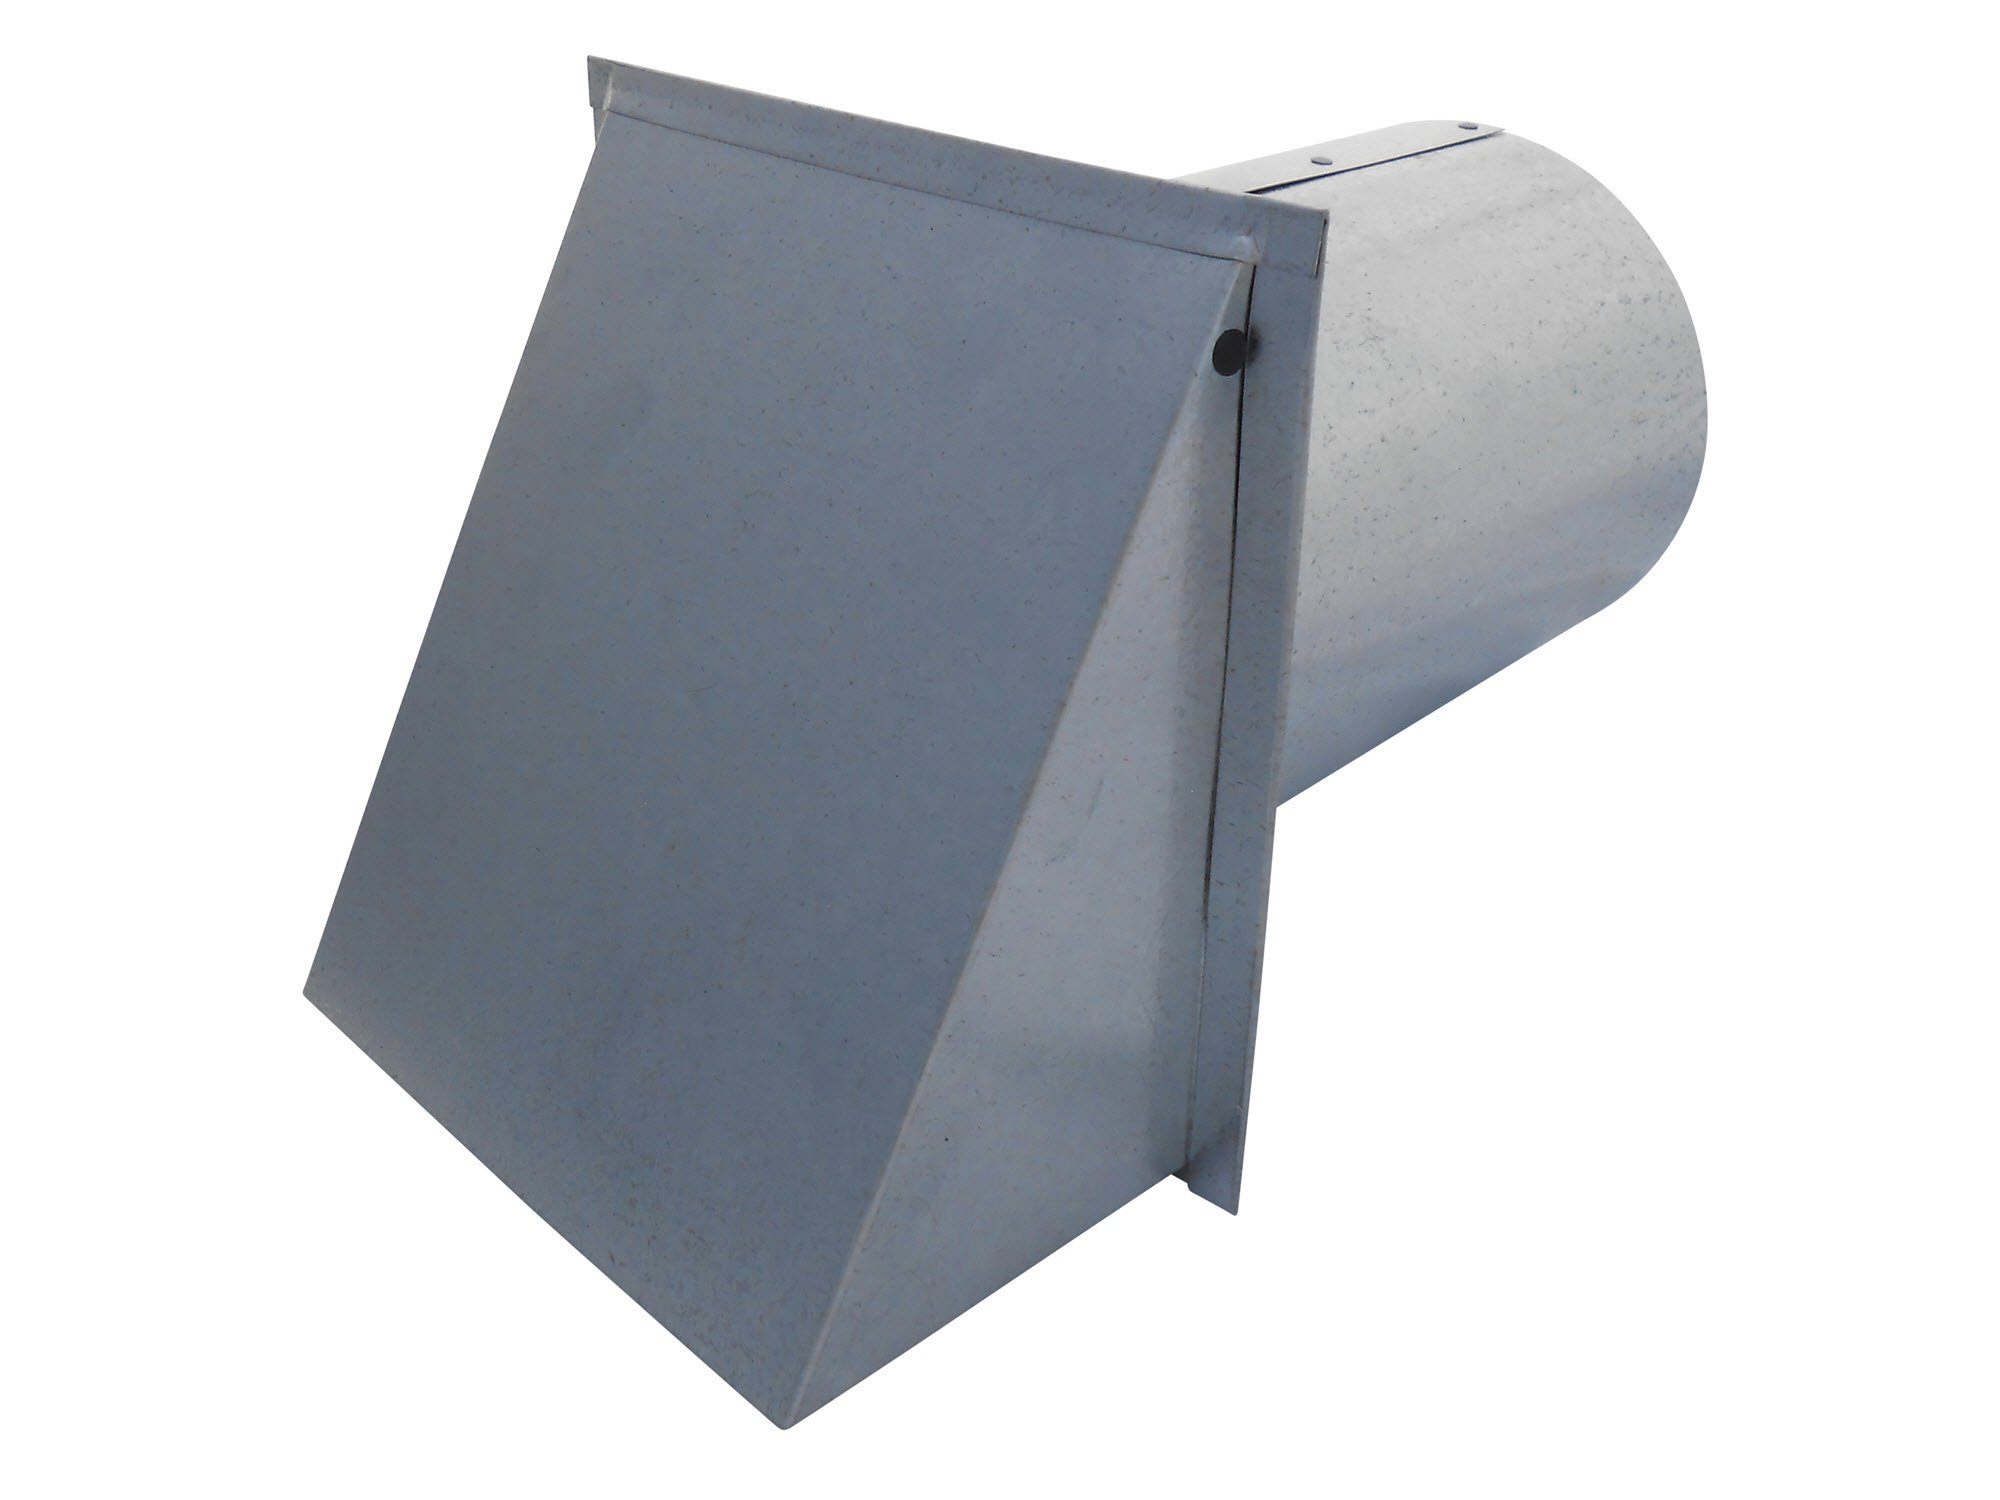 6 Inch Wall Vent Galvanized Screen Only (6 Inch diameter) - Vent Works